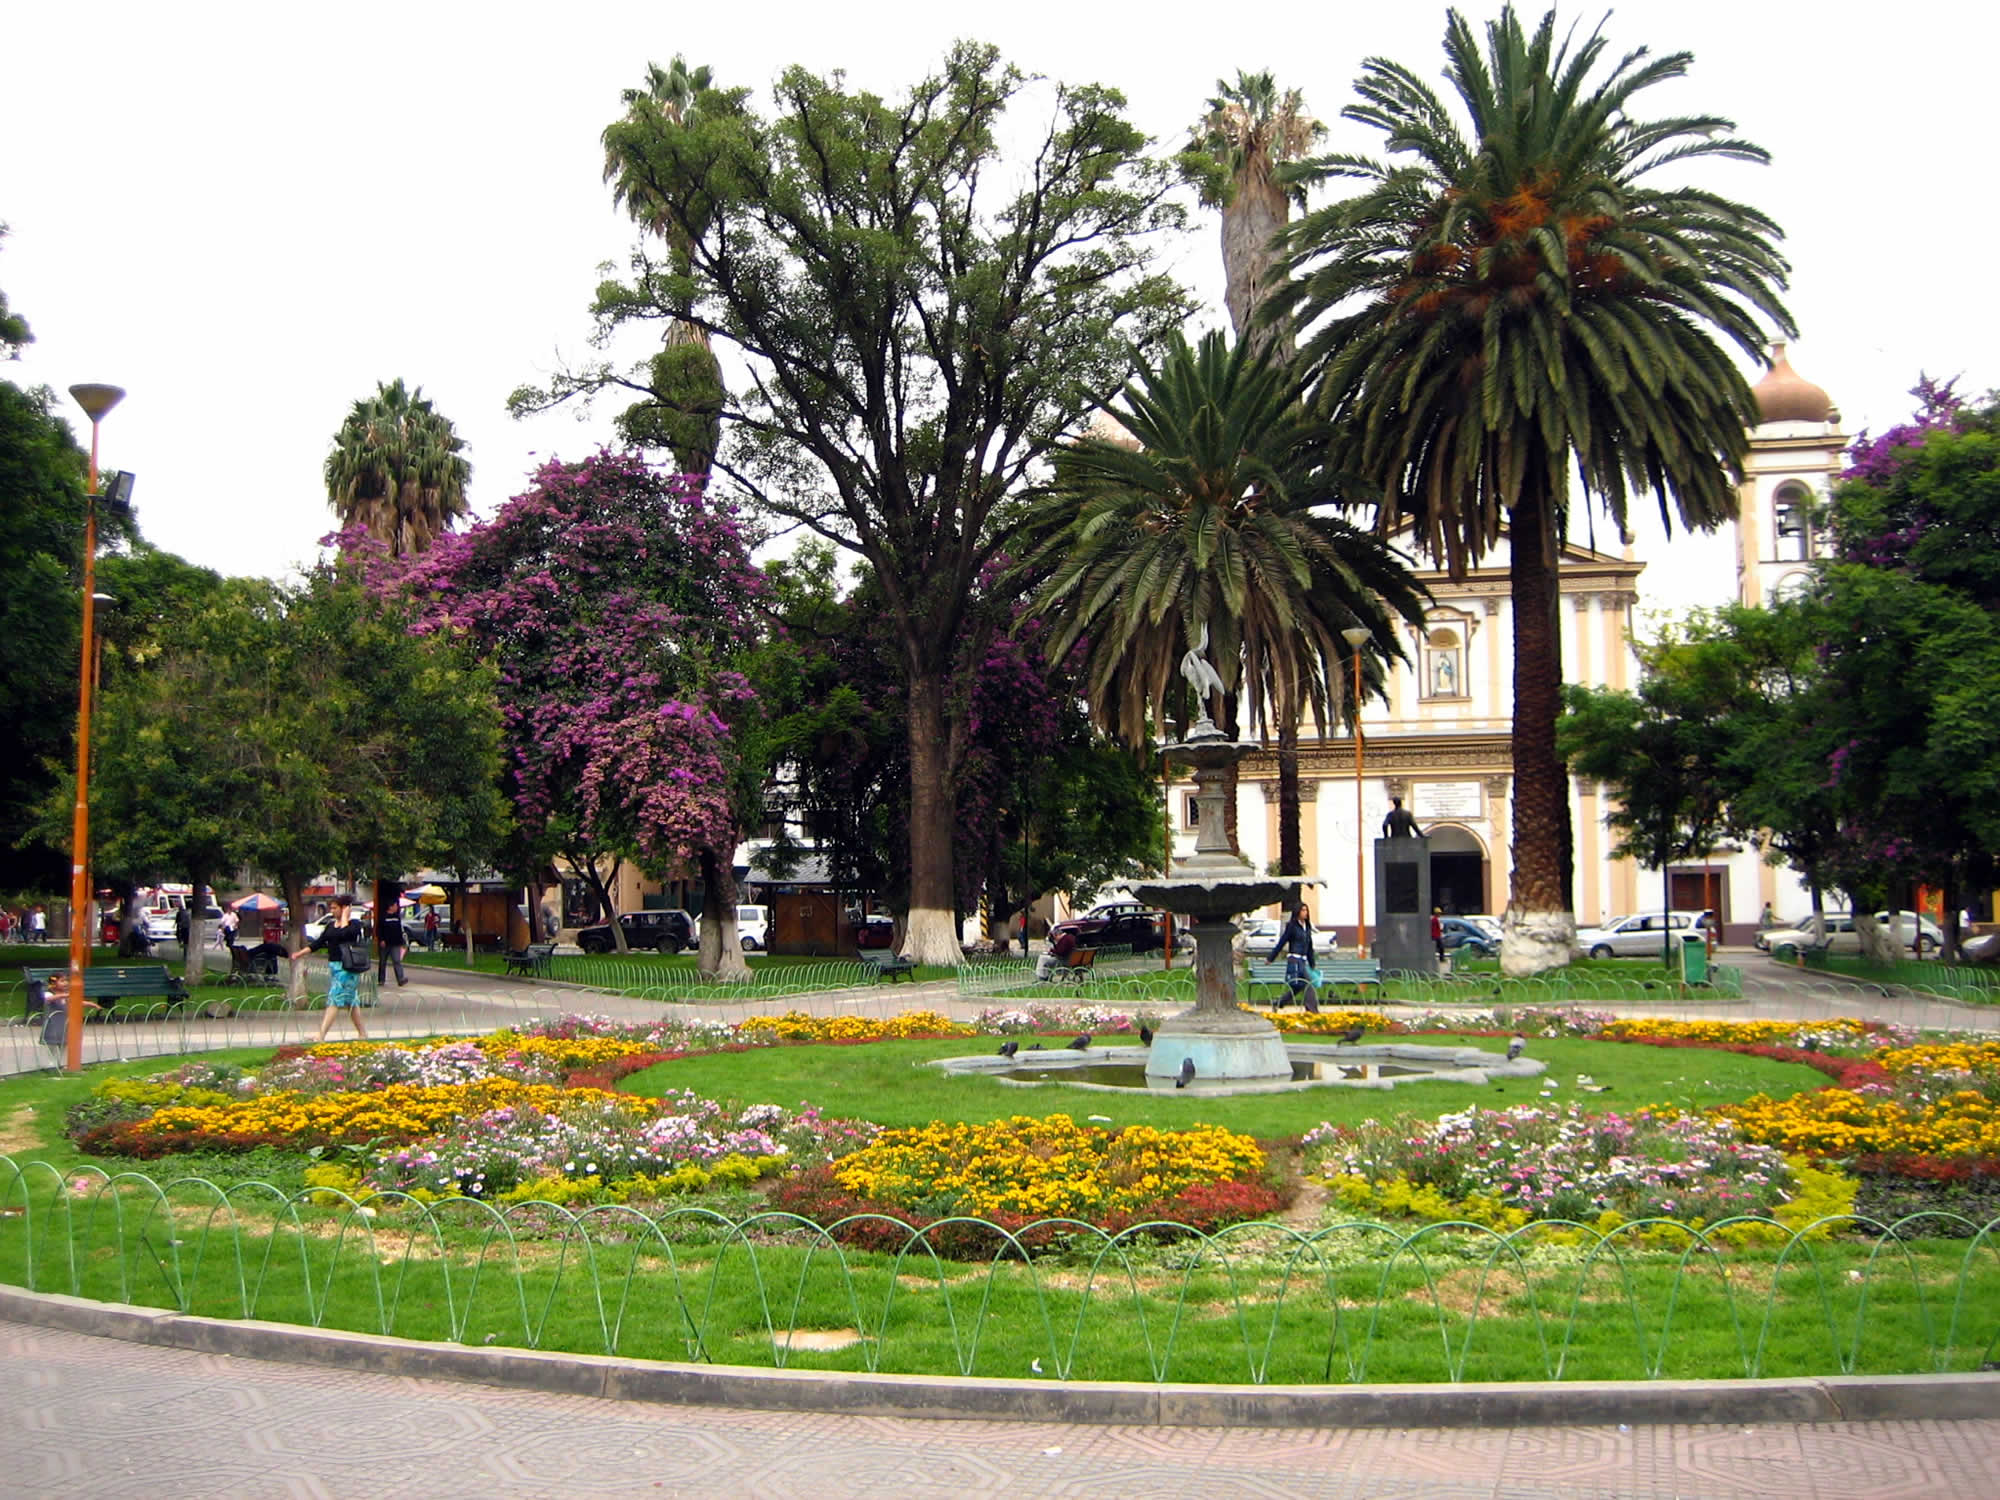 Plaza Colon and El Prado, Cochabamba